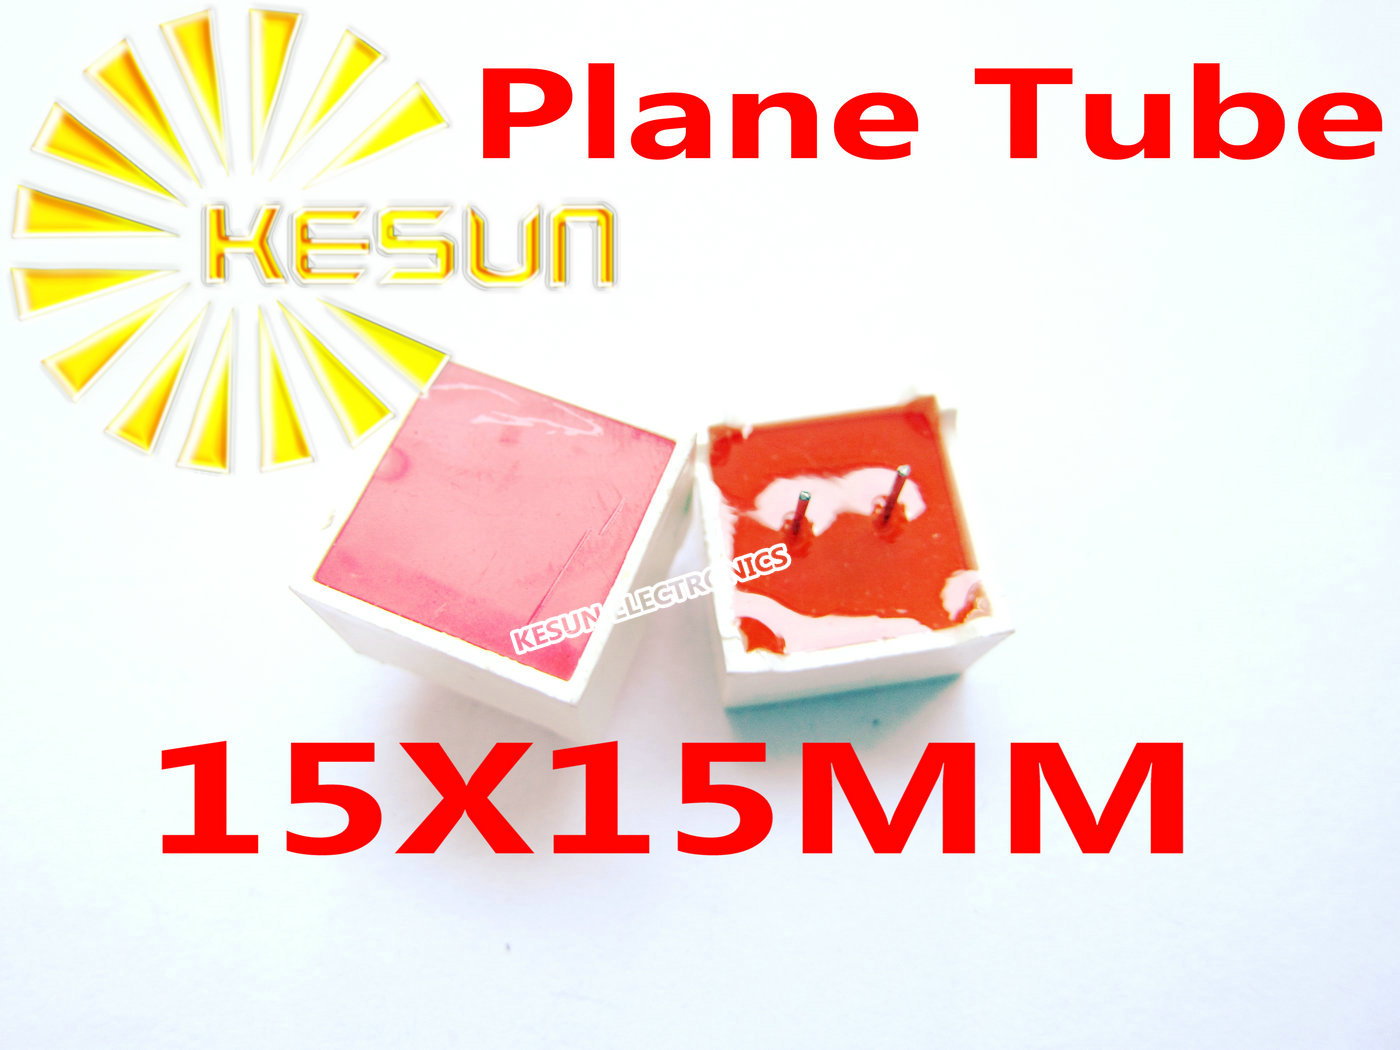 100PCS X 15*15MM Red Plane Tube  Planar Digital Tube LED Display Module 2Pin For Table Game Machine